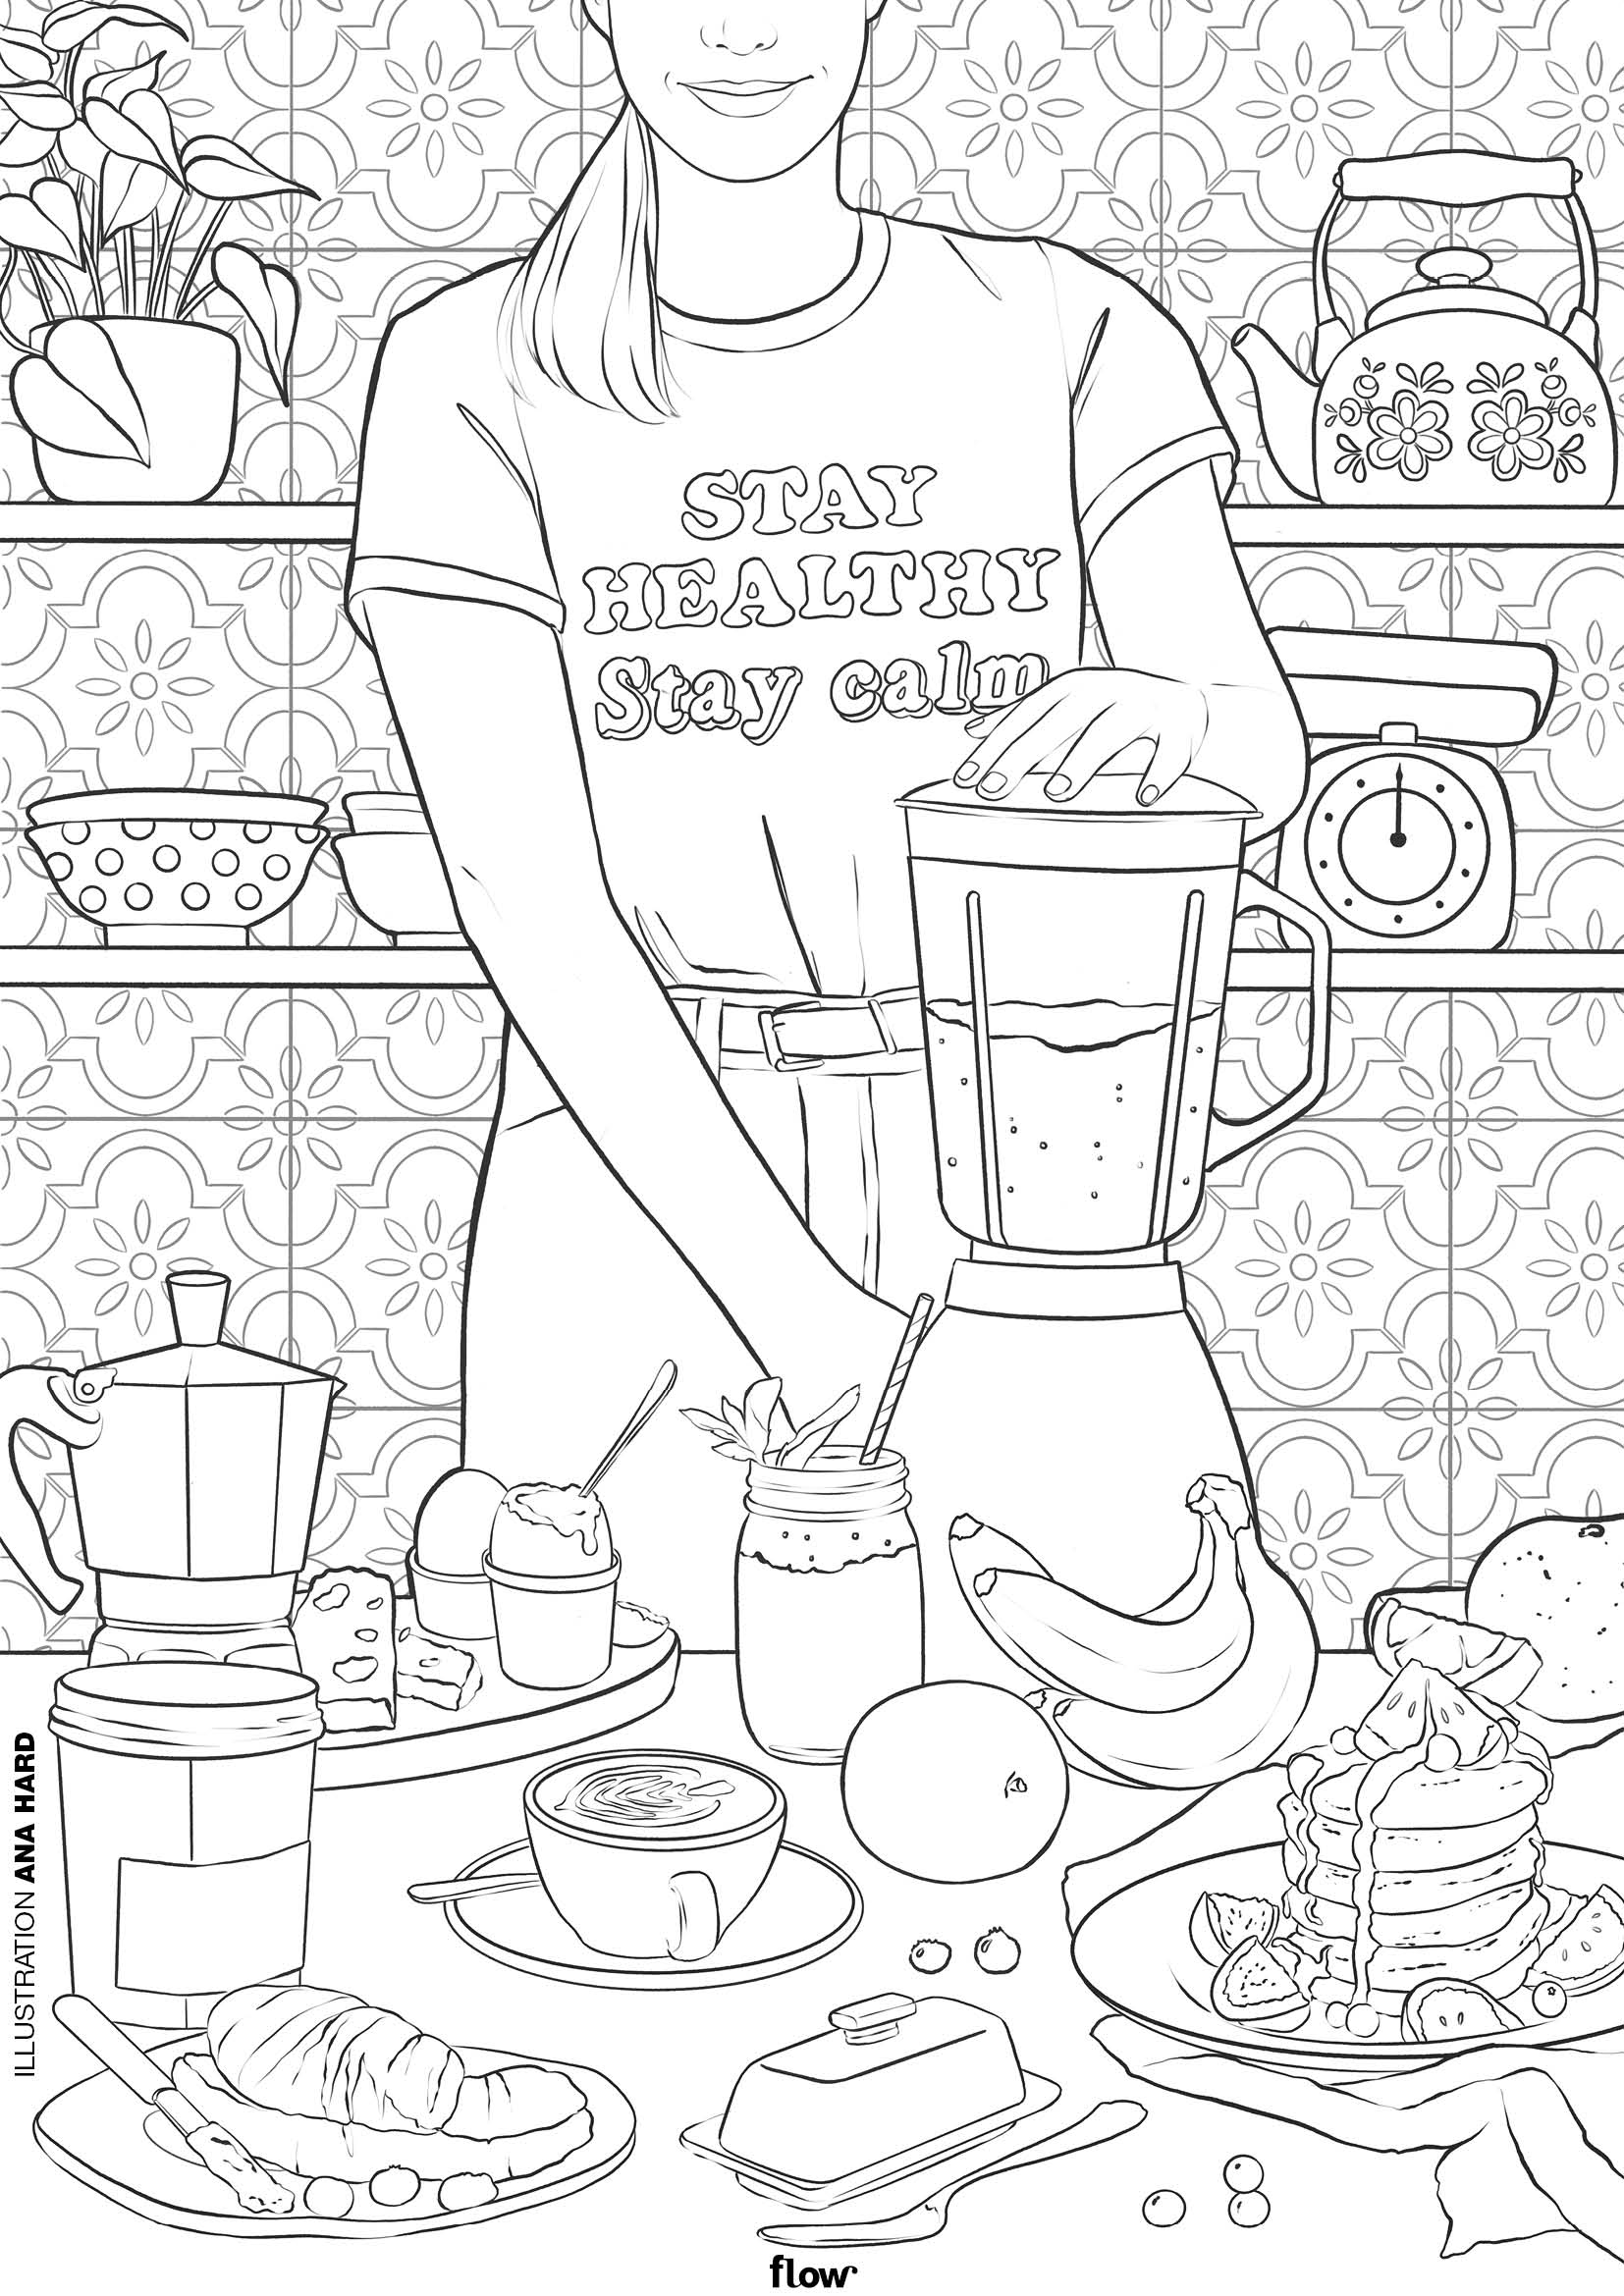 Kids-n-fun.com | Coloring page Keep Calm keep calm and stay positive | 2339x1654